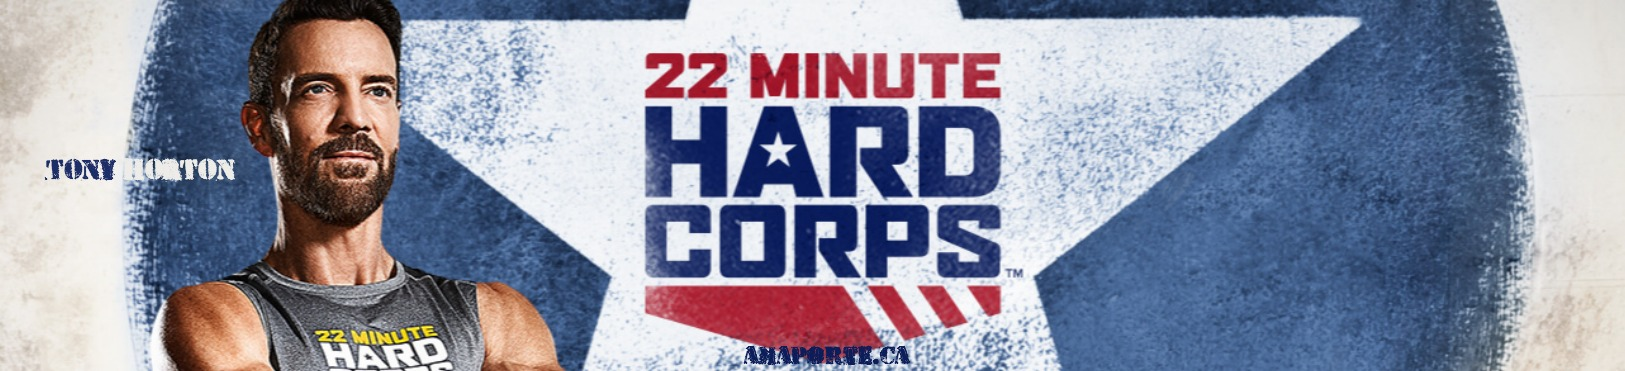 slider-22-min-hard-corps-template